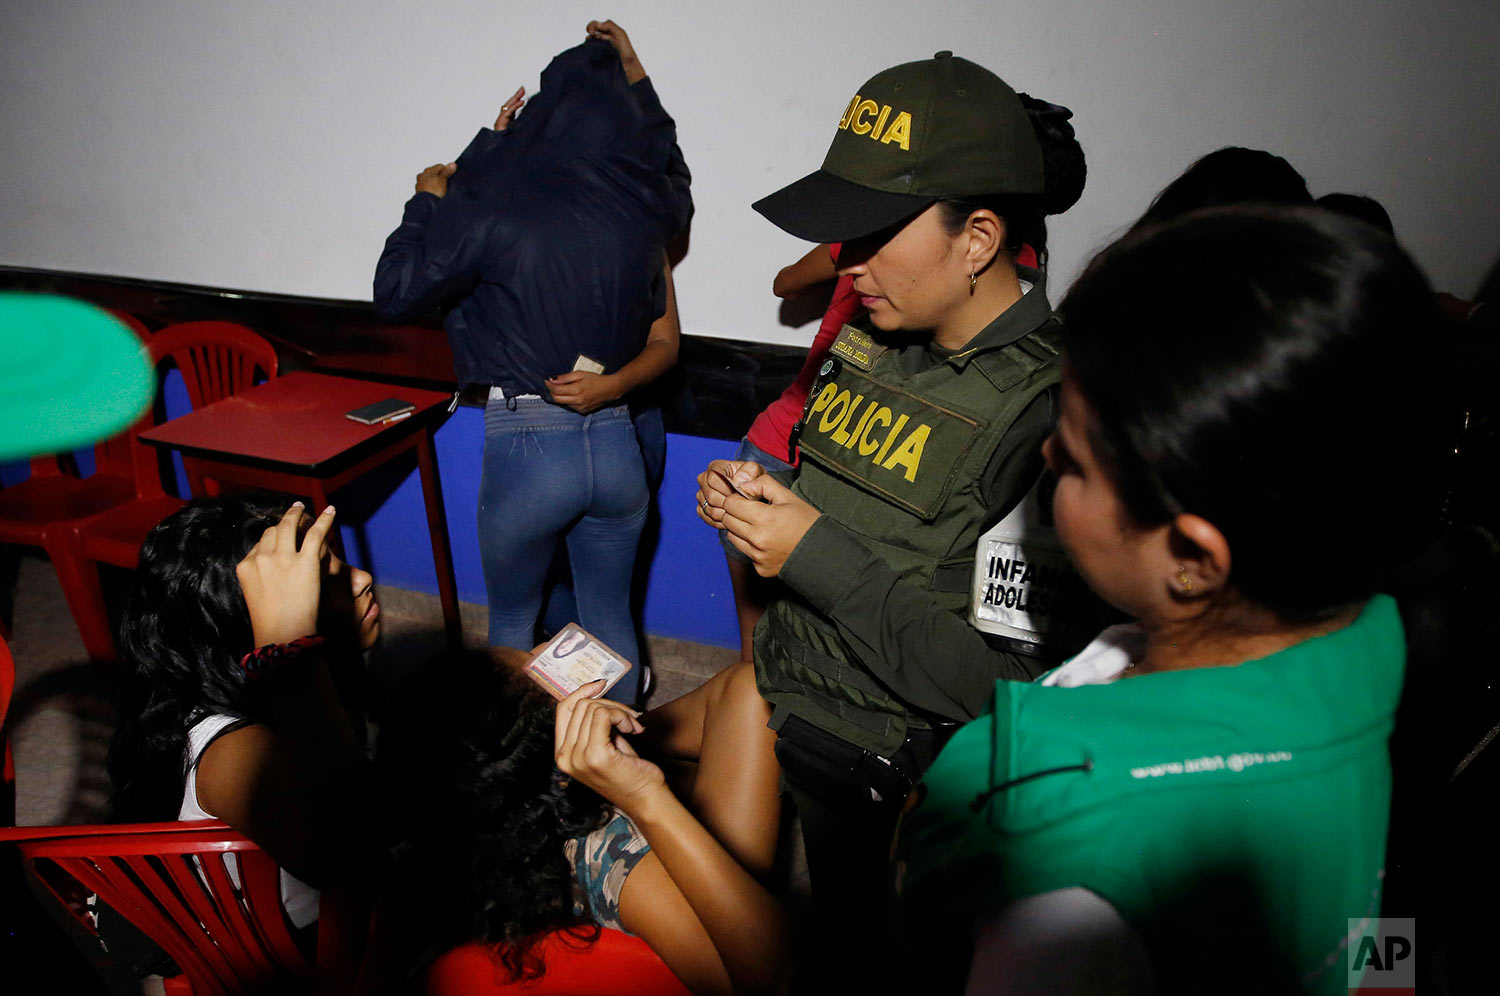 In this June 26, 2018 photo published in July, police look at the identification cards of Venezuelan girls to check their ages as they search for minors at a bar known for prostitution in Cucuta, Colombia, as two females hide from the camera, behind. As Venezuelans flee their country's collapsing economy and an autocratic government in rising numbers, a grim toll is becoming evident among the youngest arrivals: Children are sleeping on the streets, suffering from hunger and untreated infections, and sometimes being lured into sex work. (AP Photo/Fernando Vergara)